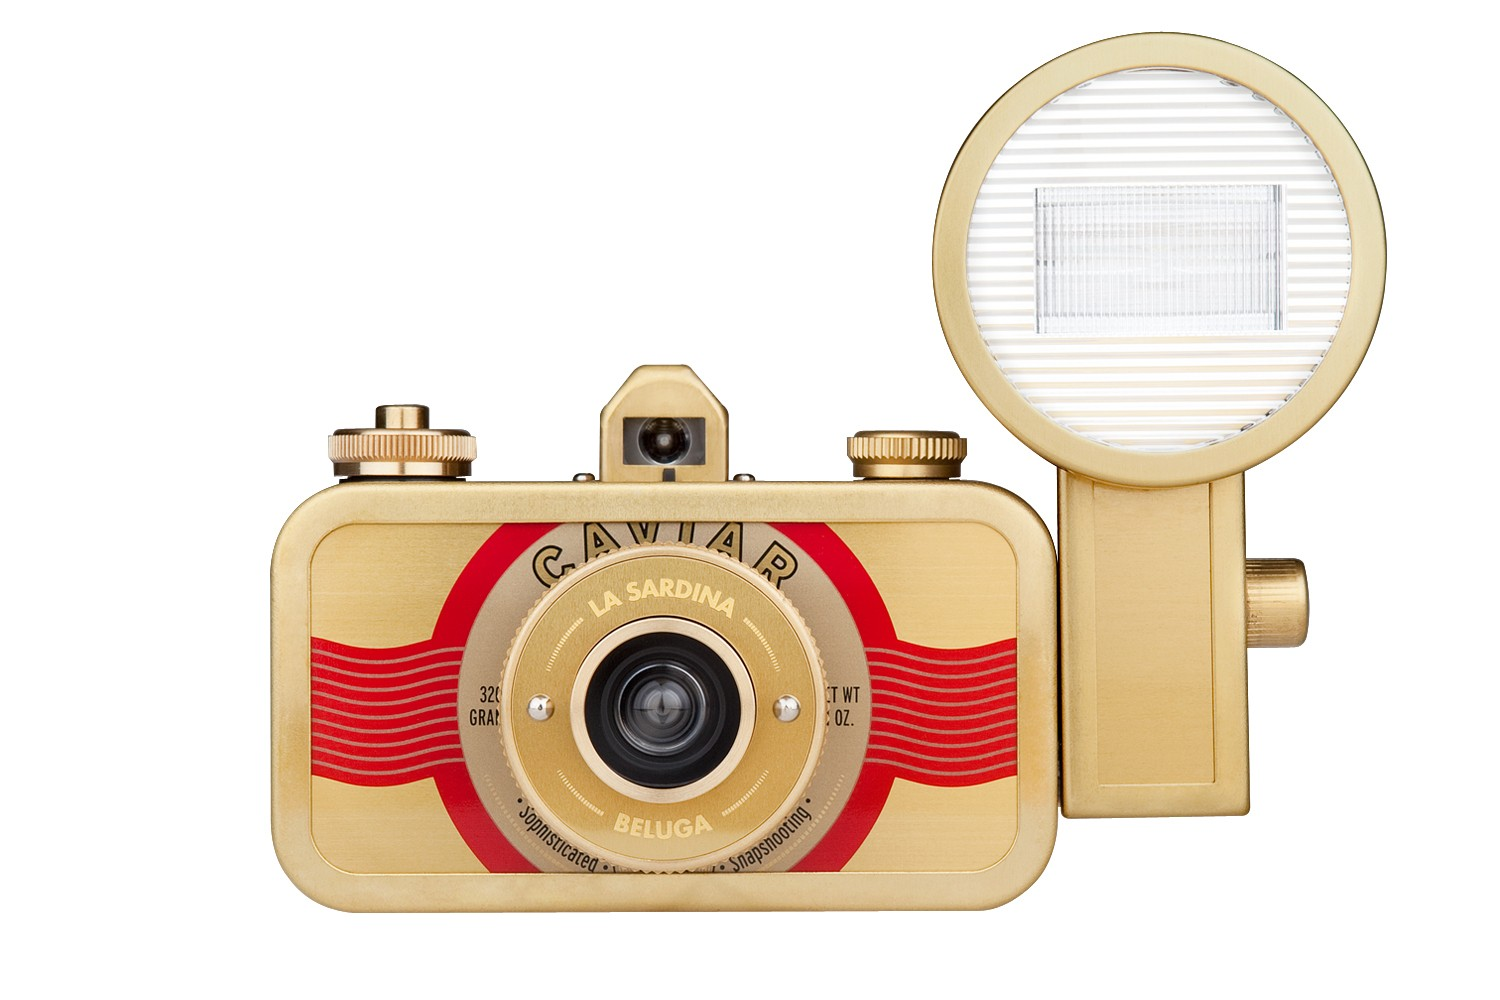 La Sardina Camera and Flash (Beluga Edition)